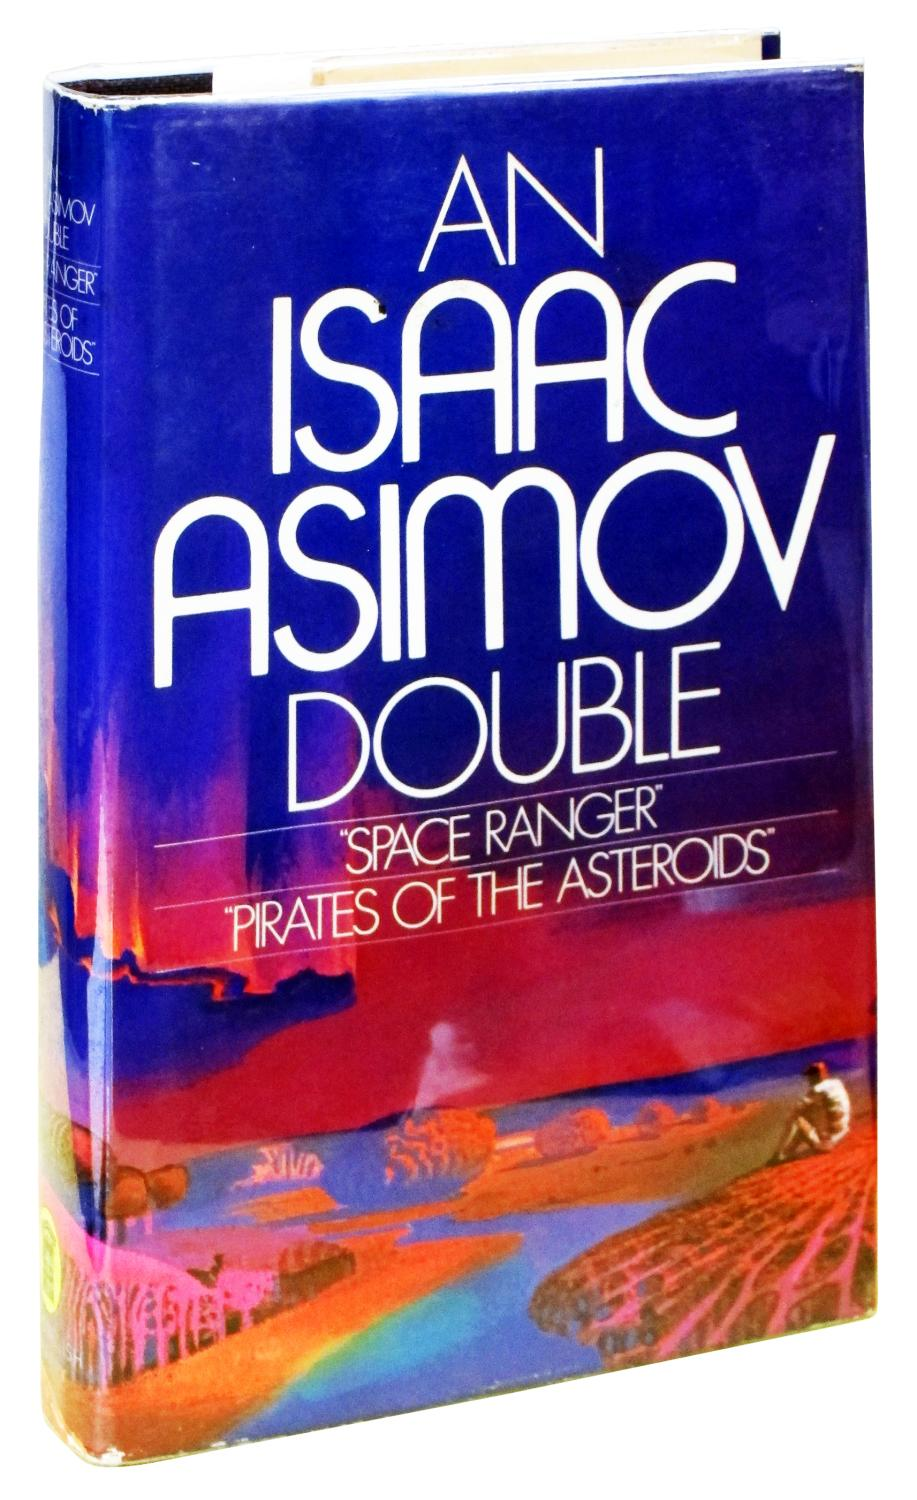 An Isaac Asimov Double: Space Ranger [and] Pirates of the Asteroids: Isaac Asimov